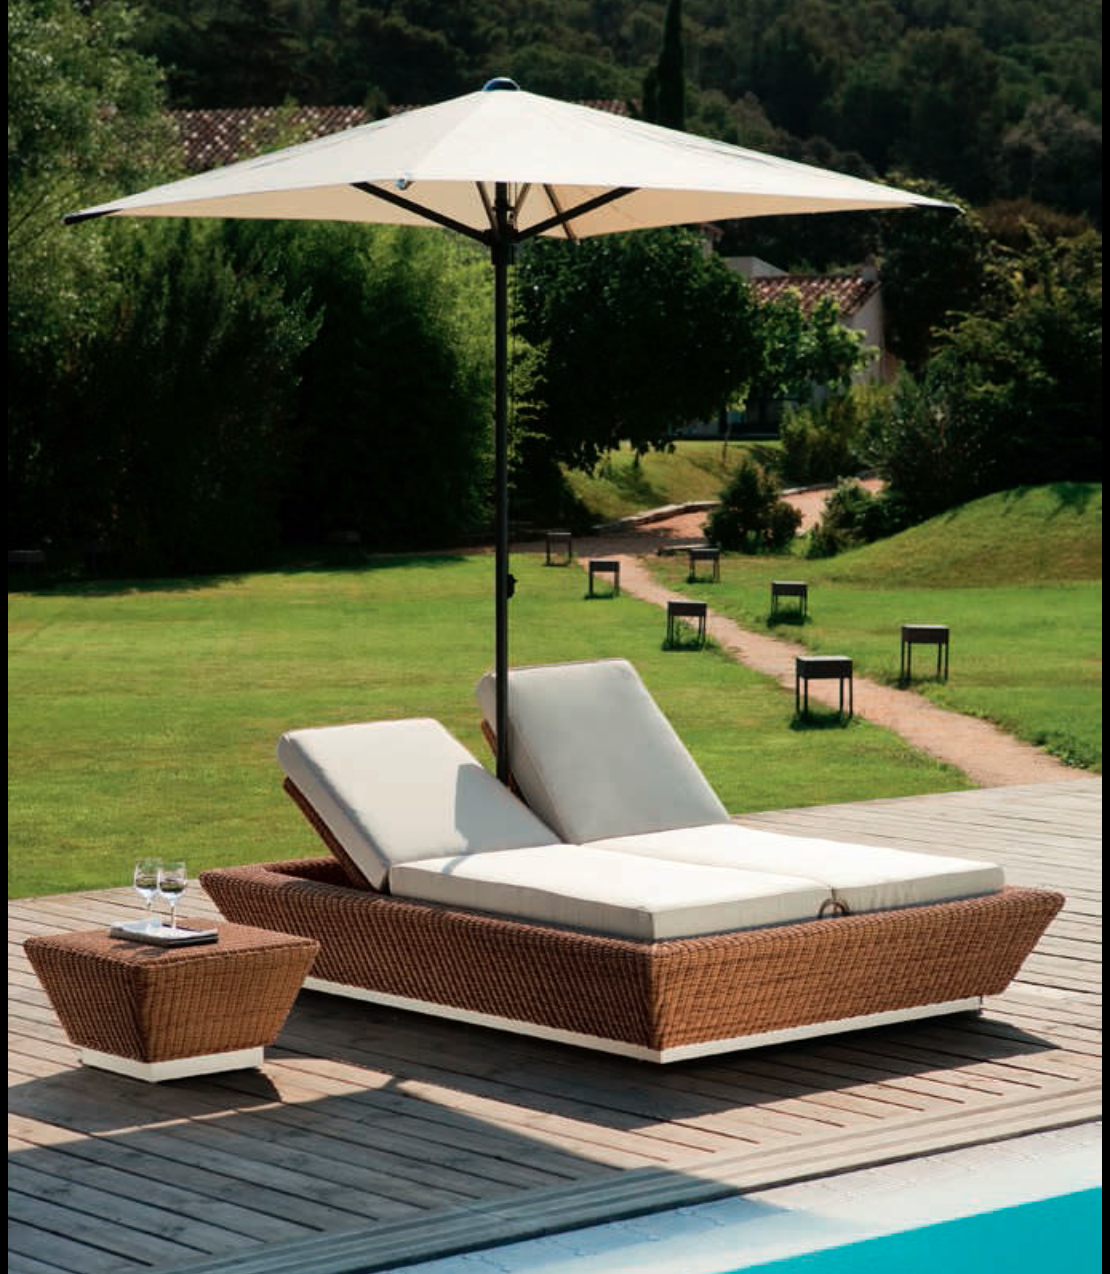 Emejing transat jardin design contemporary awesome for Bain de soleil fauteuil